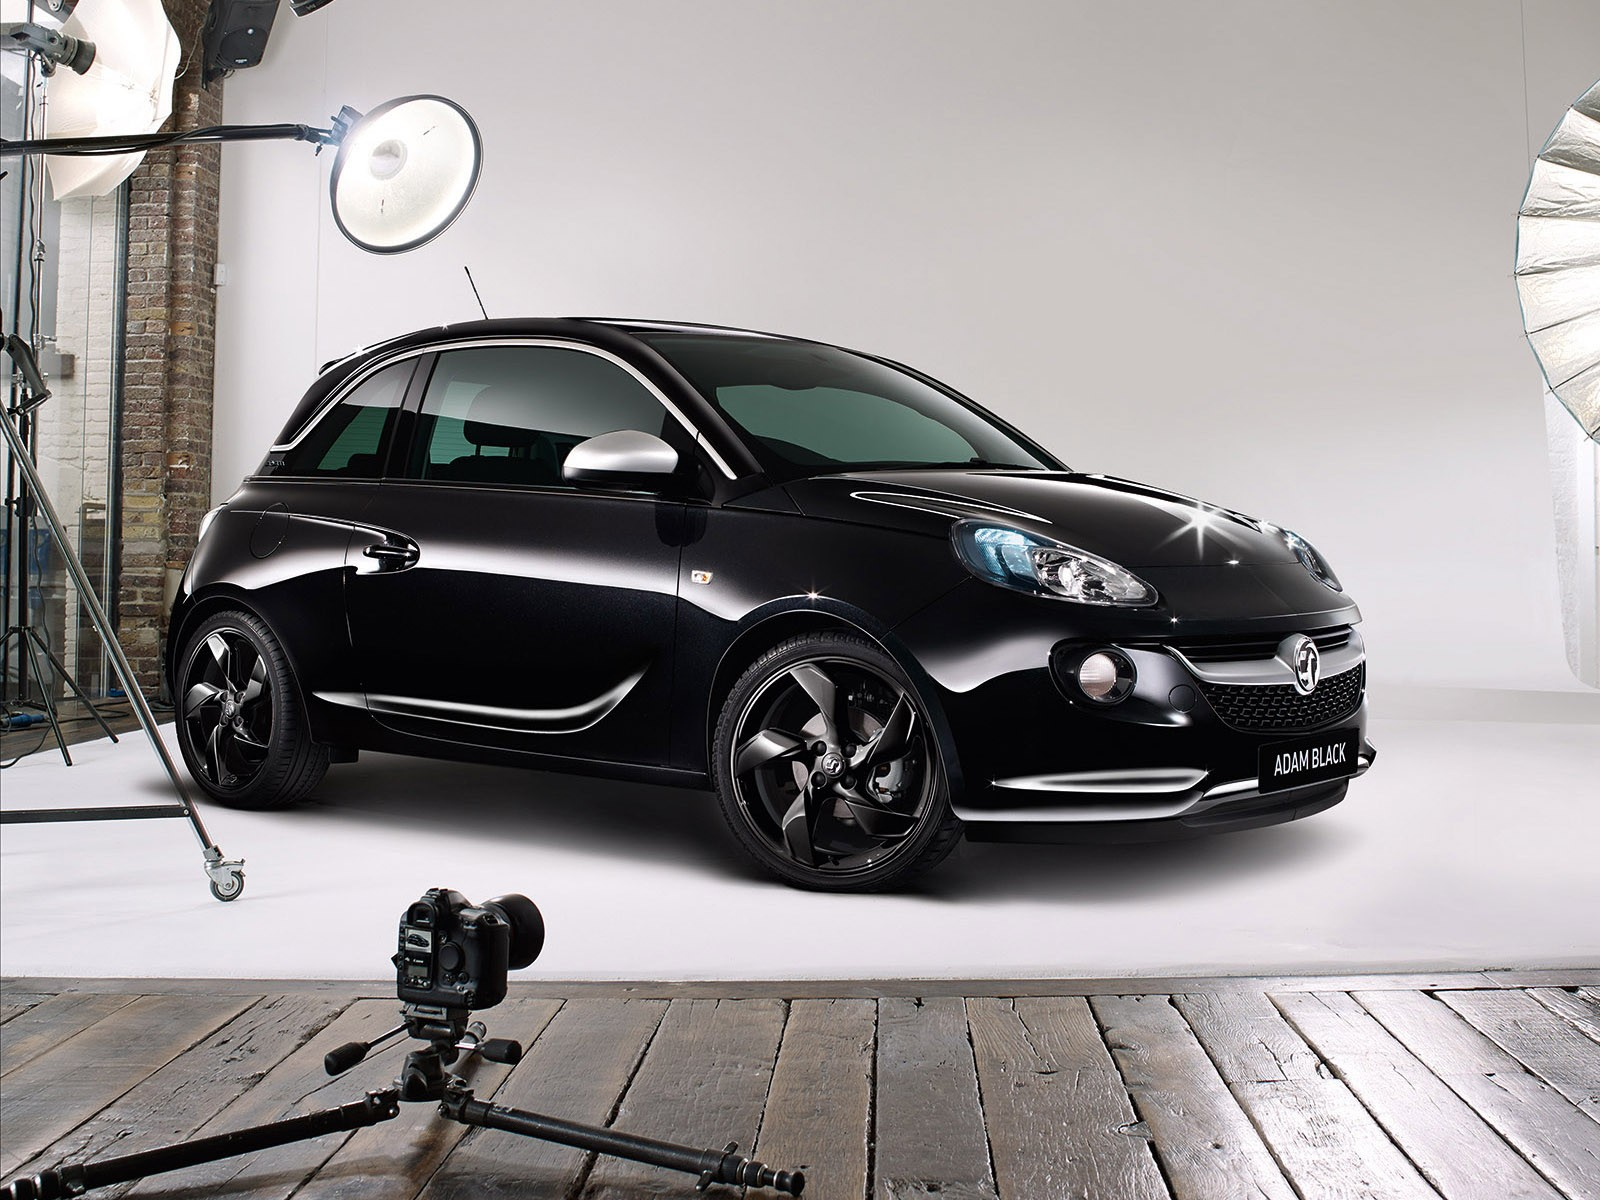 2014 Vauxhall Adam Black Edition